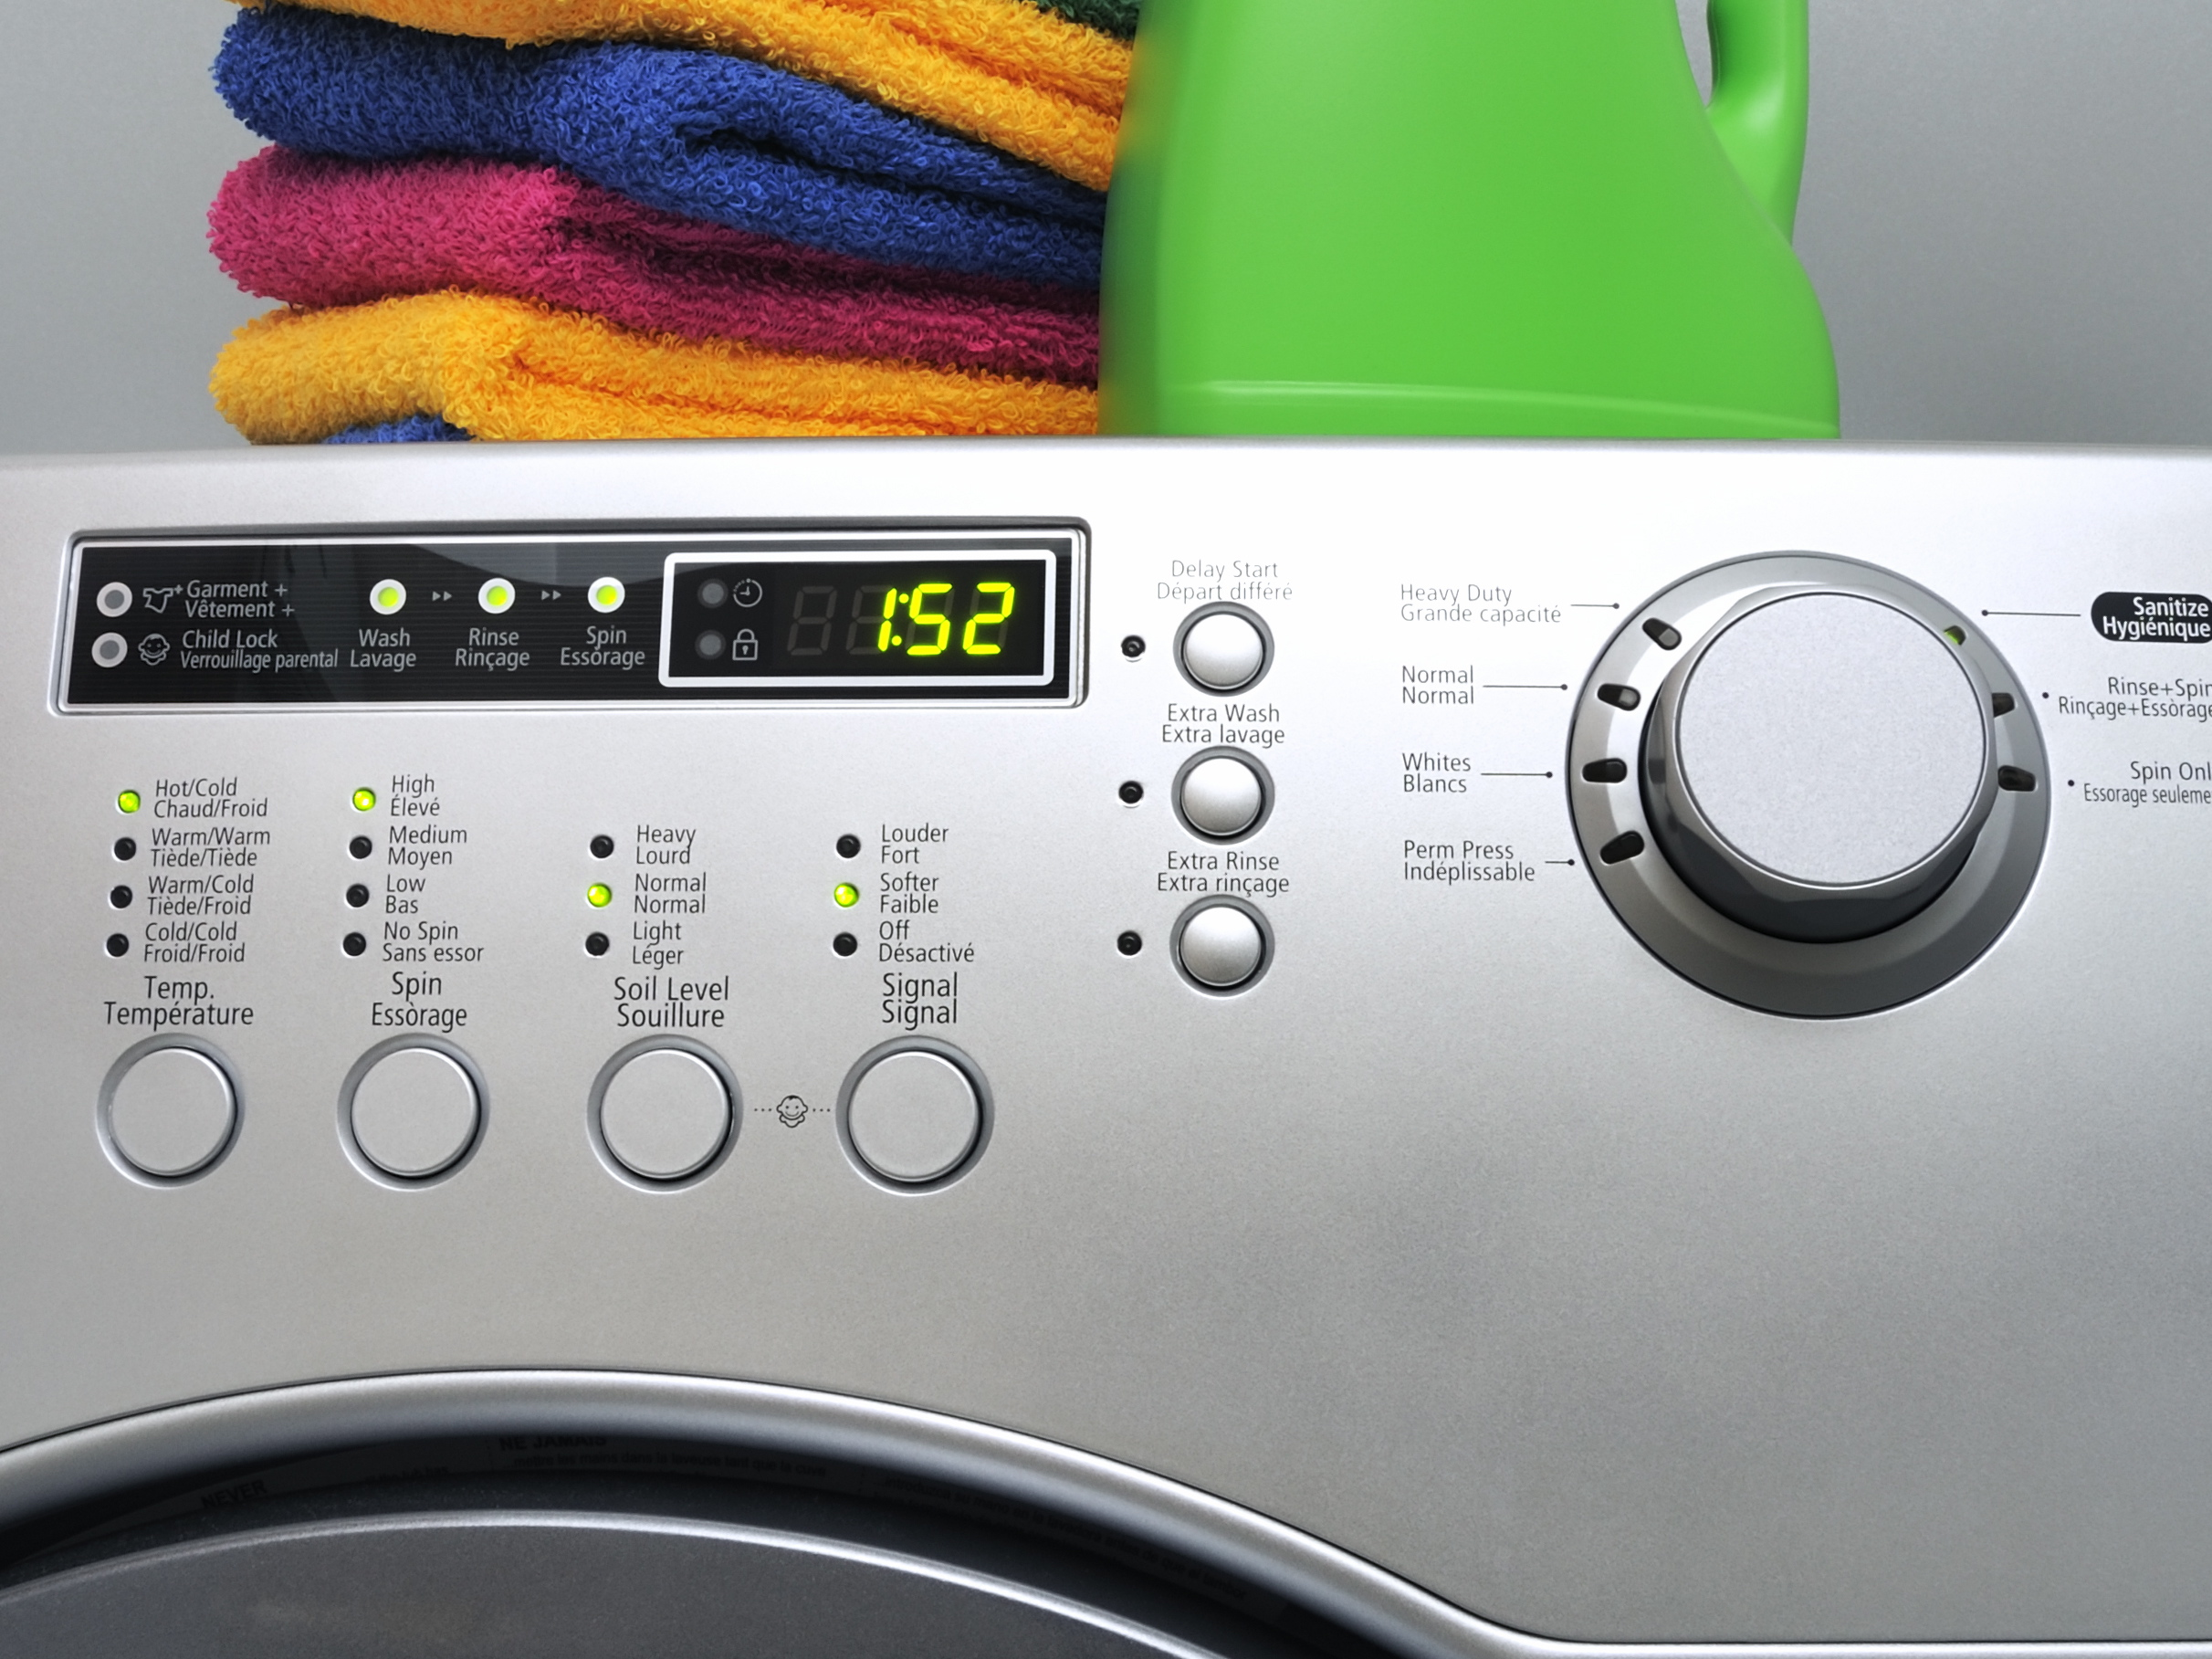 Clothes Washers & Dryers